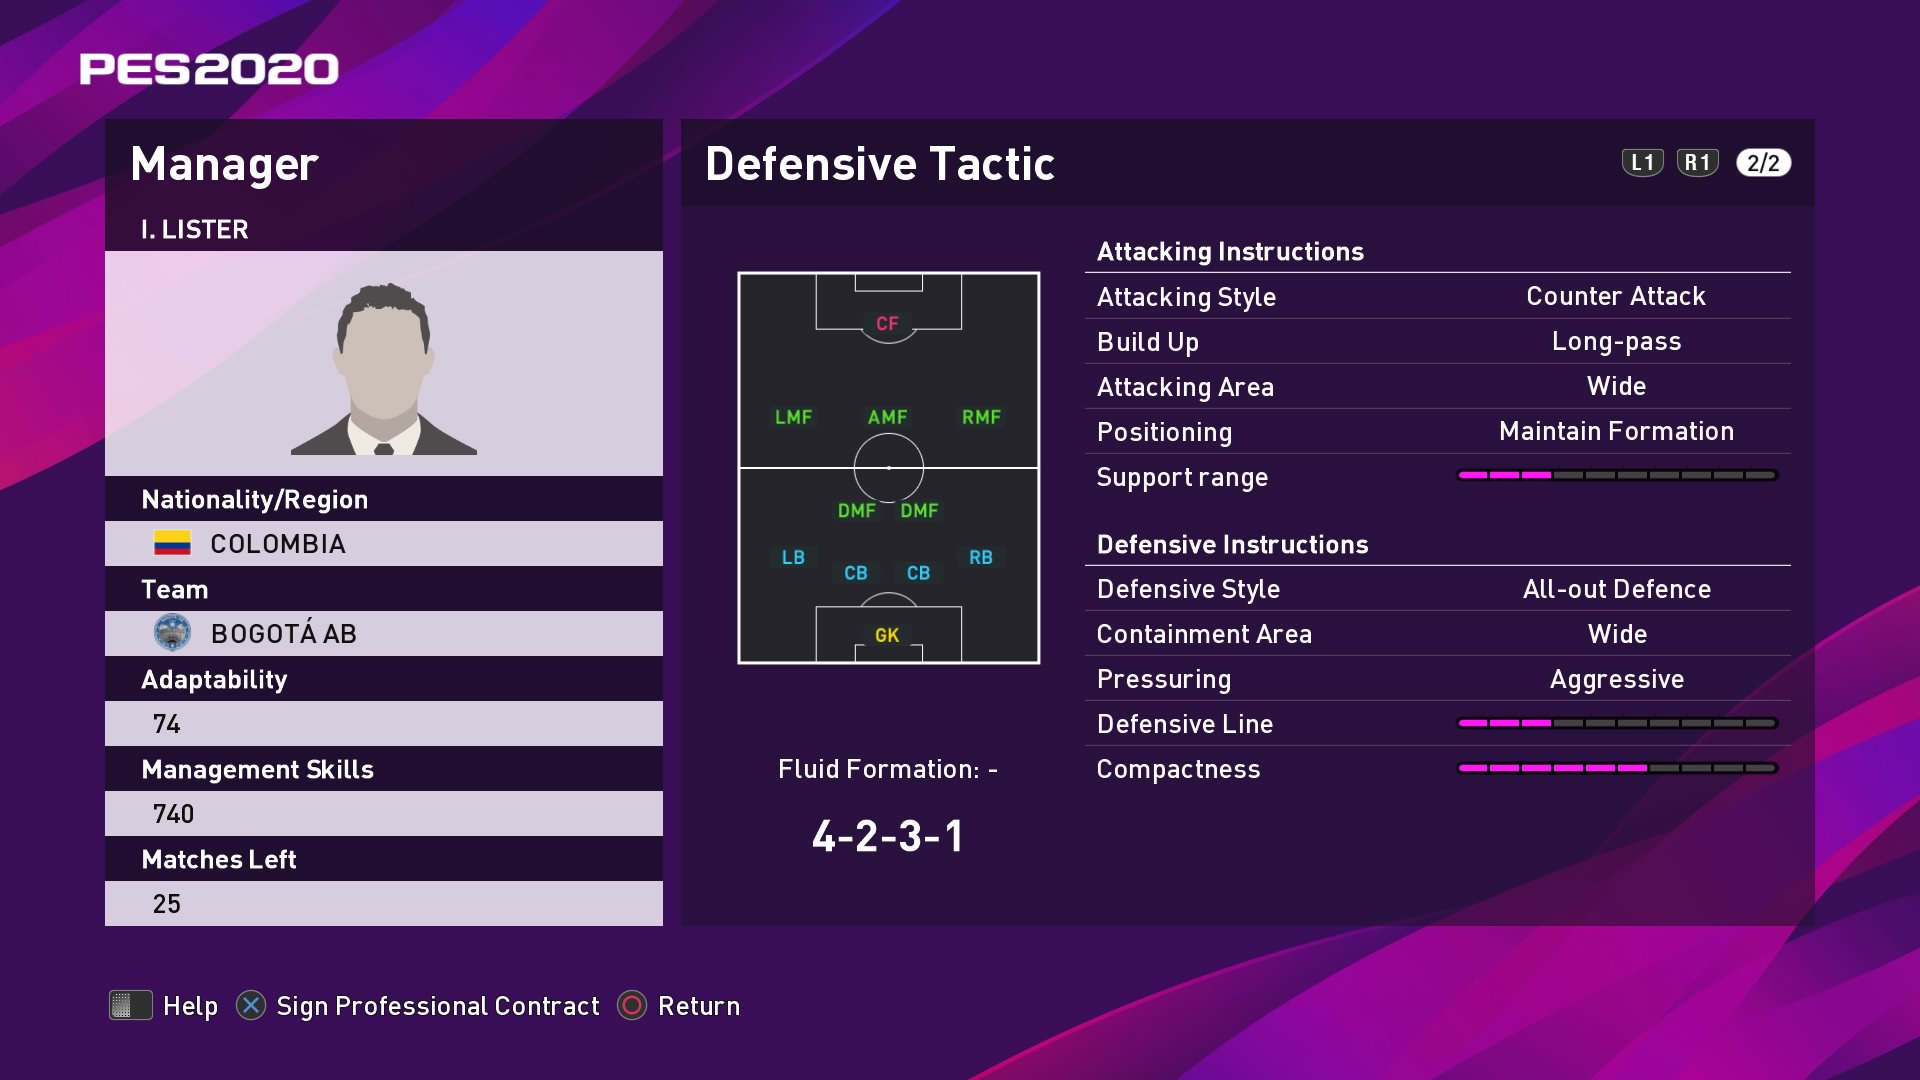 I. Lister (Jorge Luis Pinto) Defensive Tactic in PES 2020 myClub